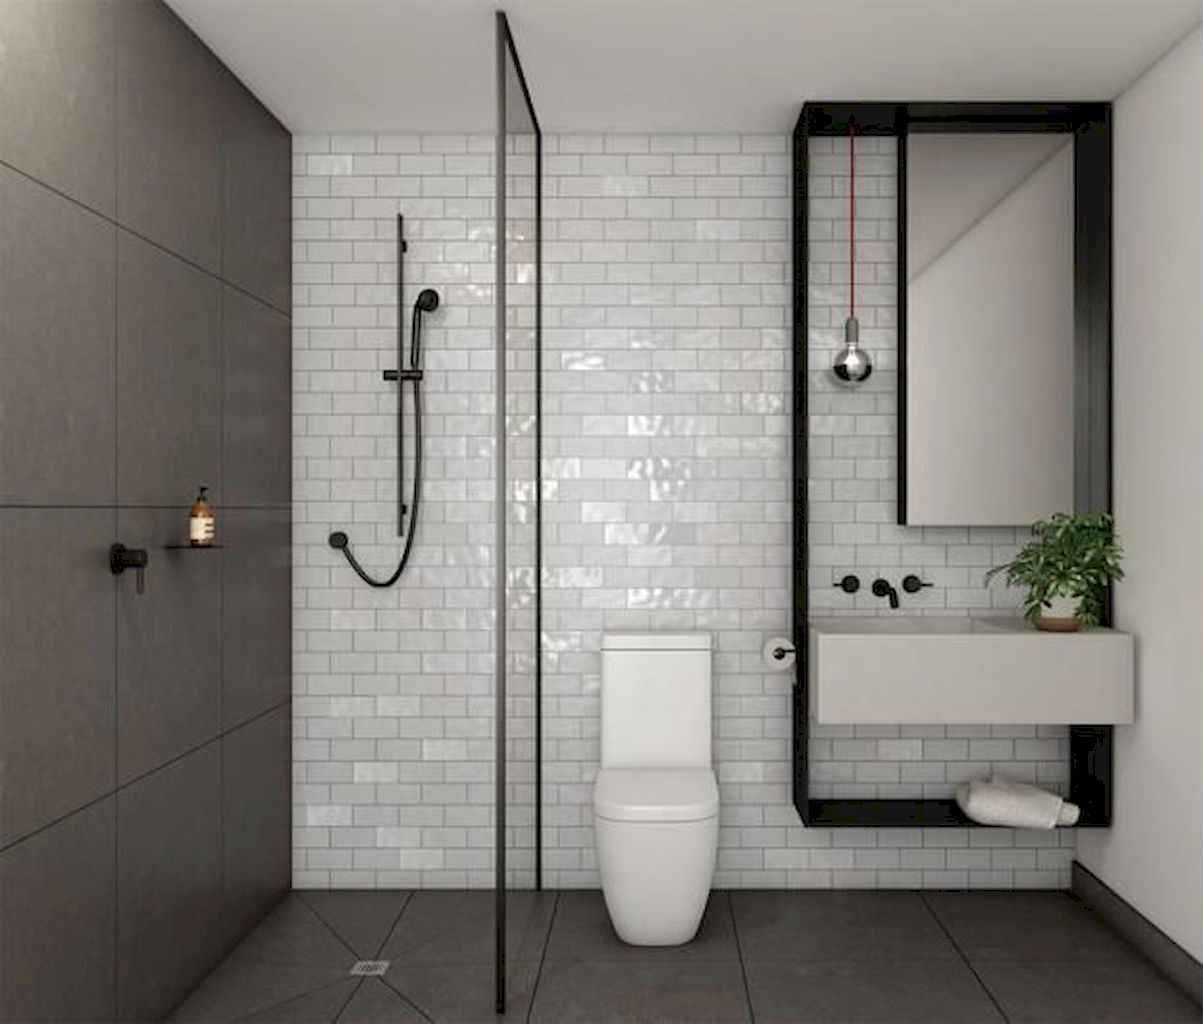 111 awesome small bathroom remodel ideas on a budget (65)